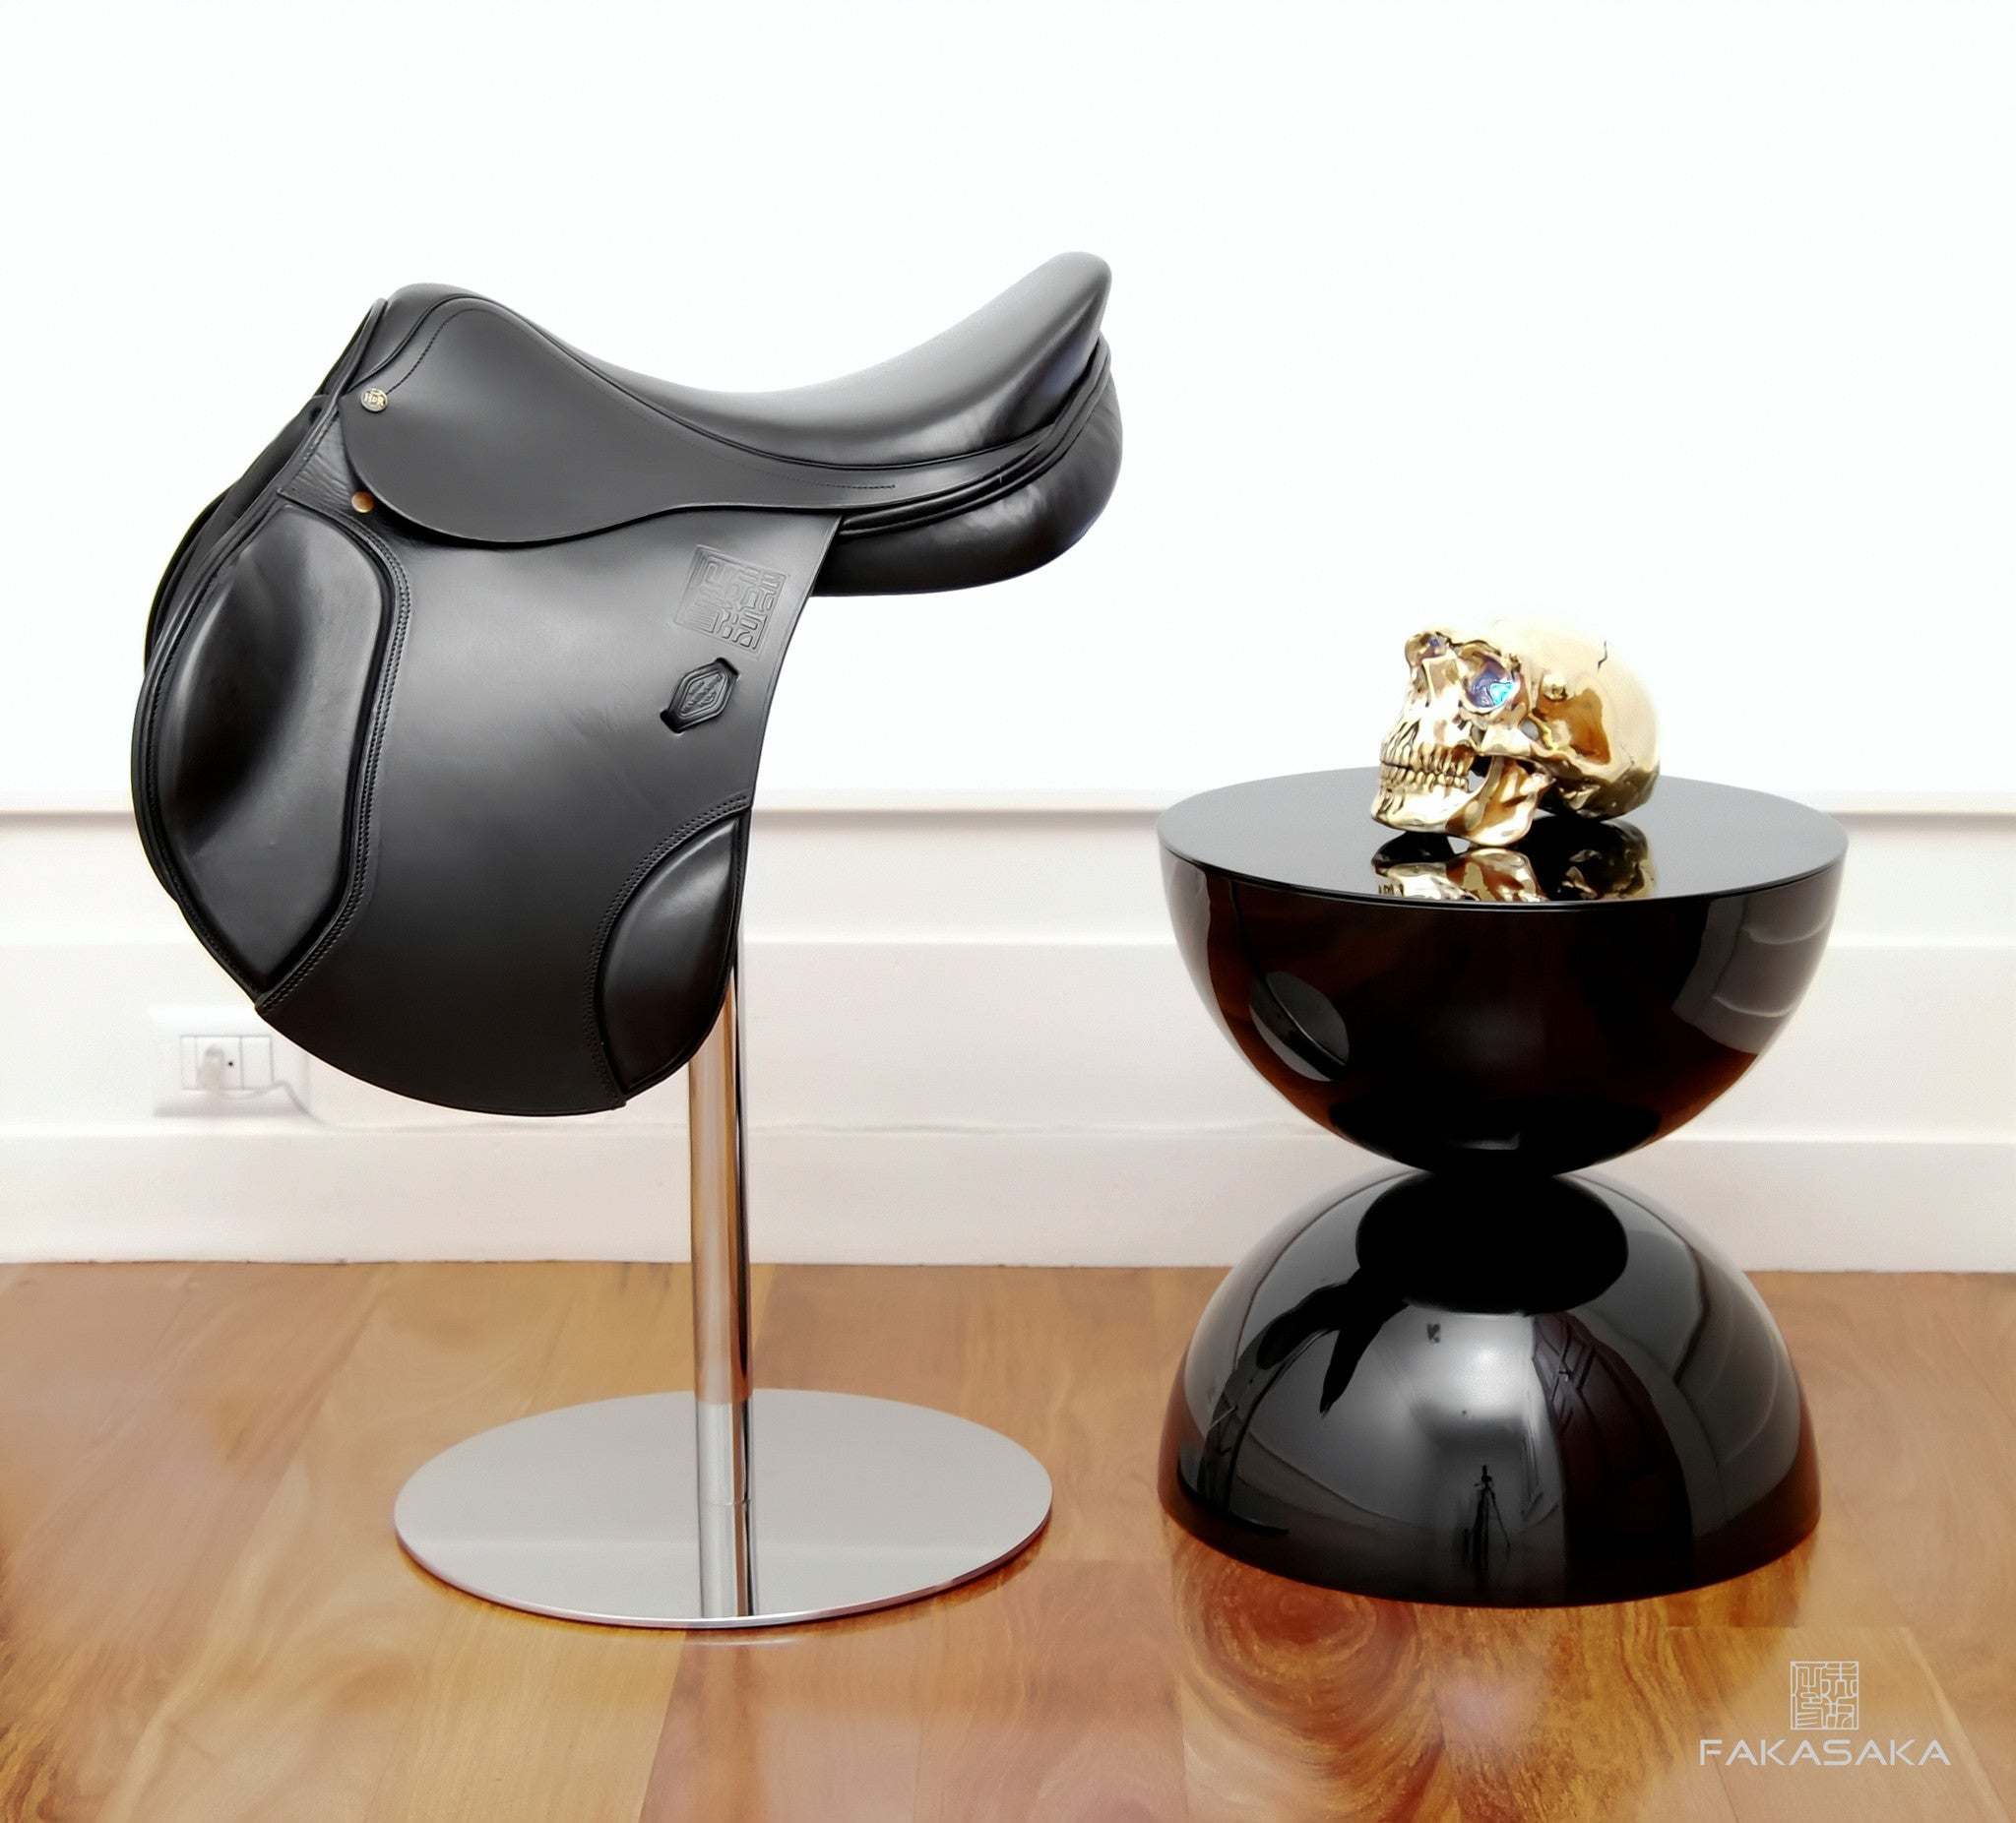 FA11 SIDE TABLE / DRINK TABLE<br><br>BLACK GLASS ON TOP<br>LACQUER BLACK